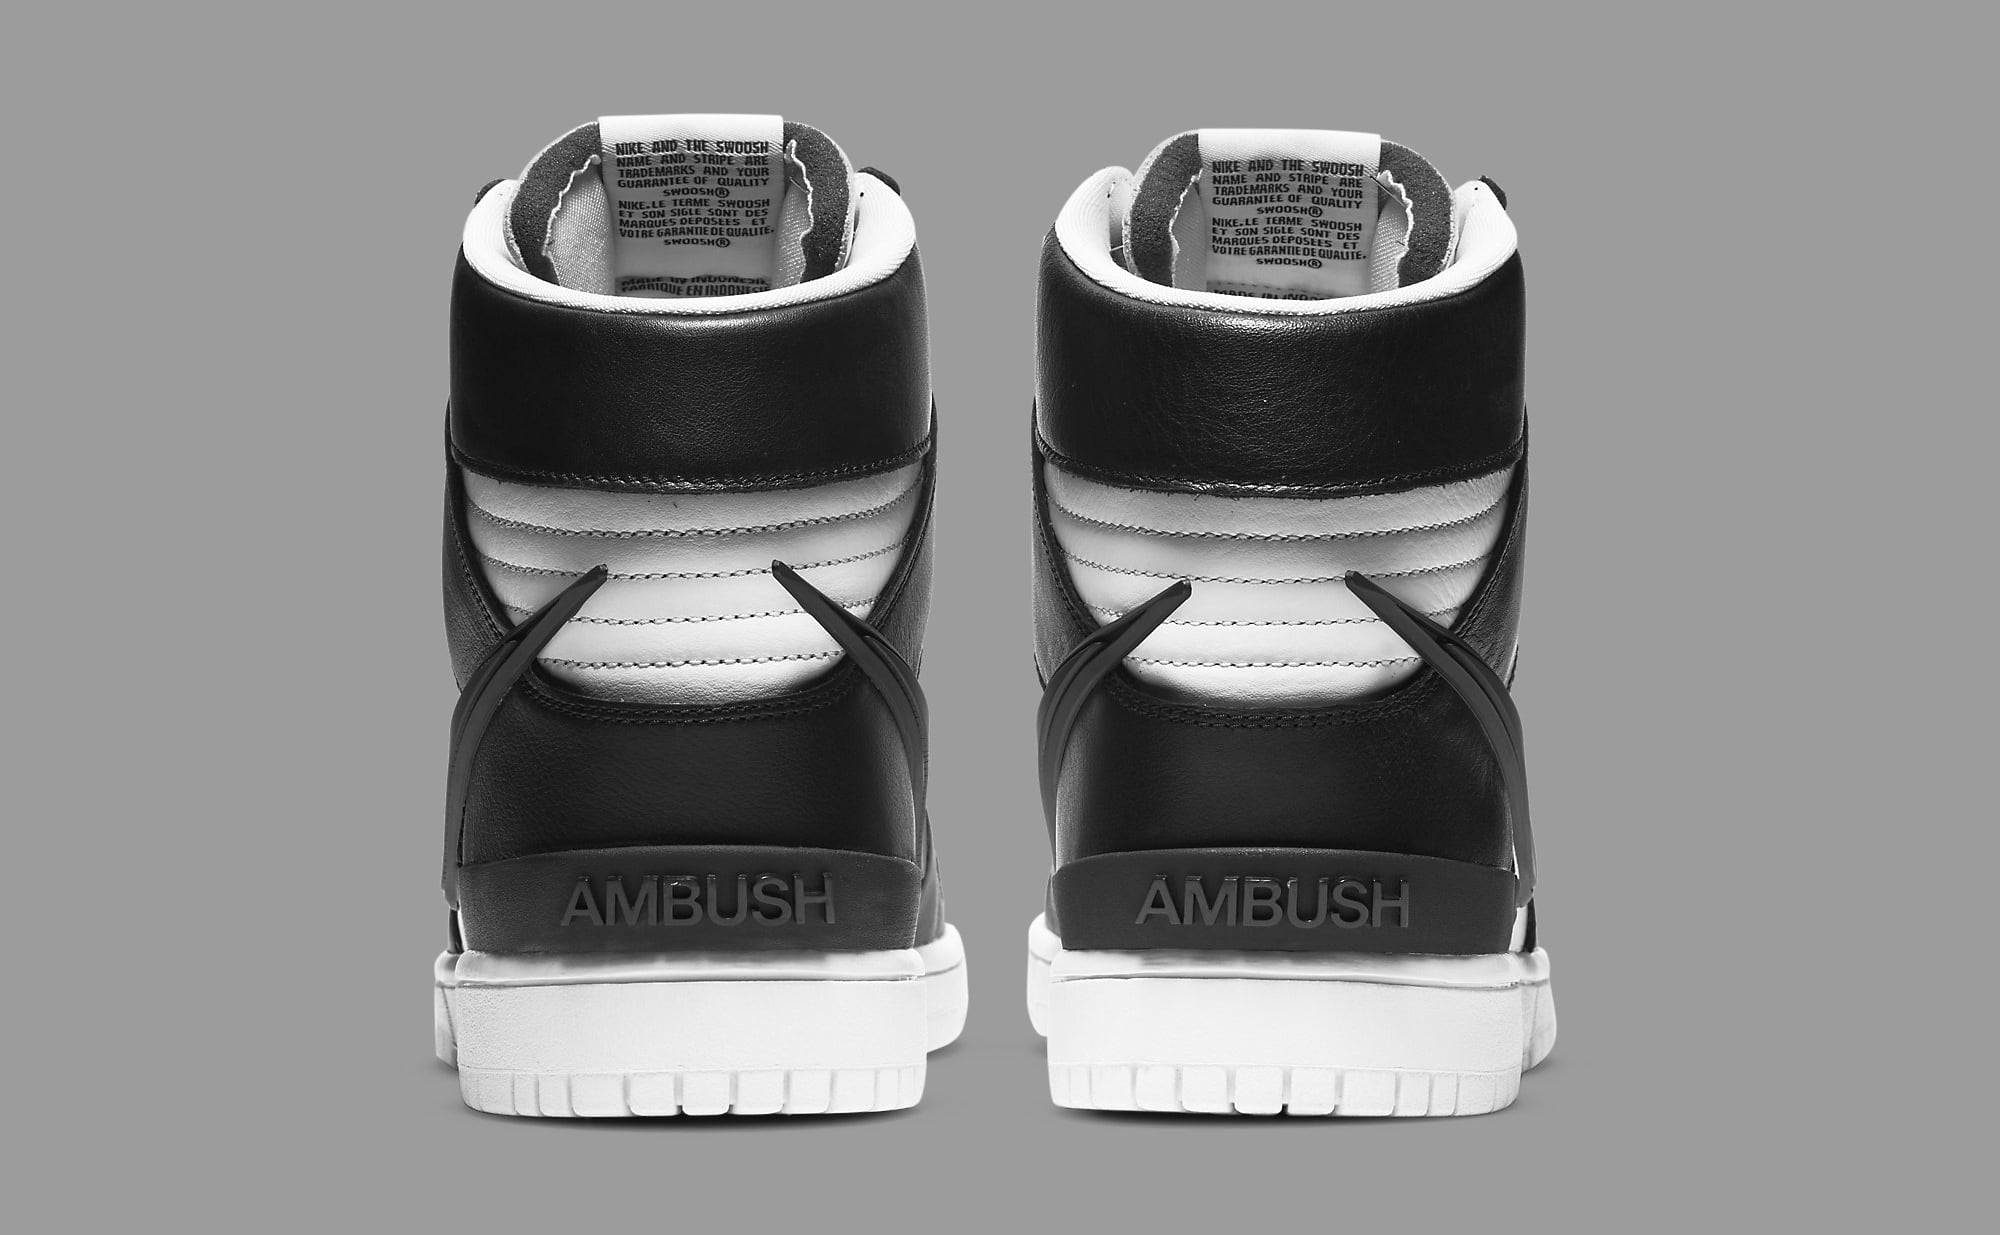 Ambush x Nike Dunk High Black/White CU7544-001 Heel